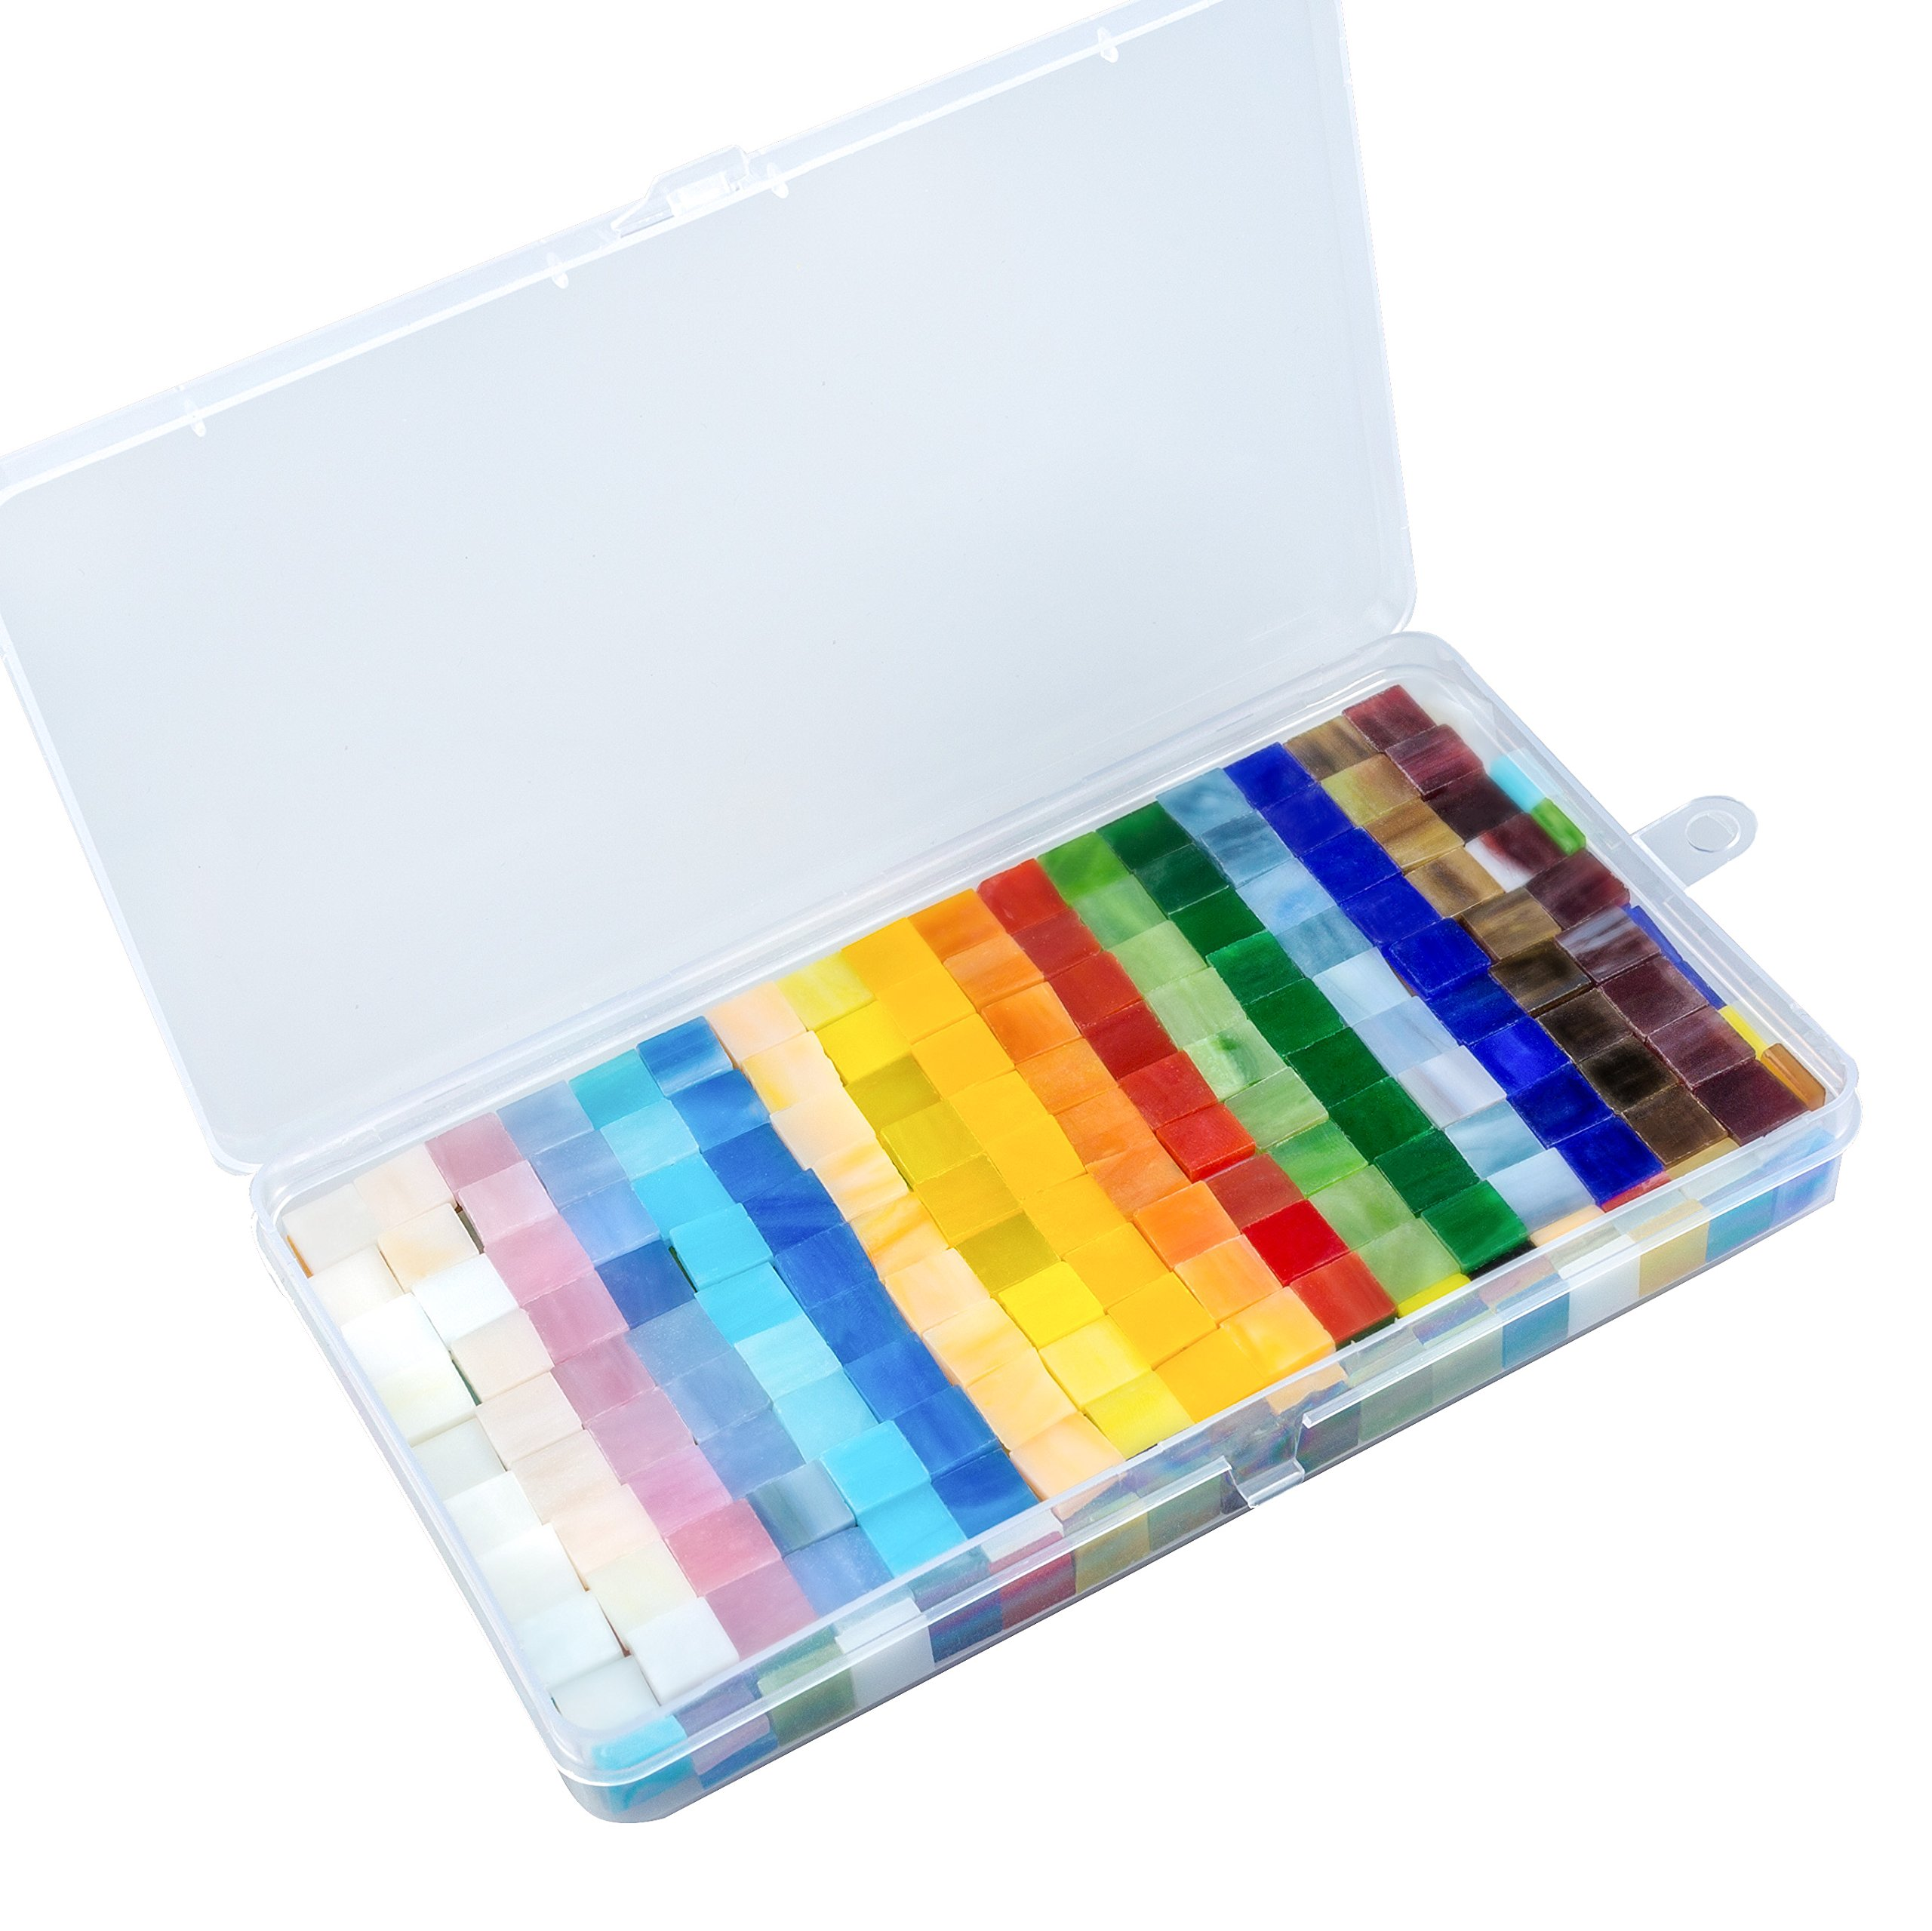 Resinta 300 g/ 450 Pieces Mixed Color Mosaic Tiles Mosaic Glass Pieces with Organizing Container for Home Decoration or DIY Crafts, Square, 1 by 1 cm